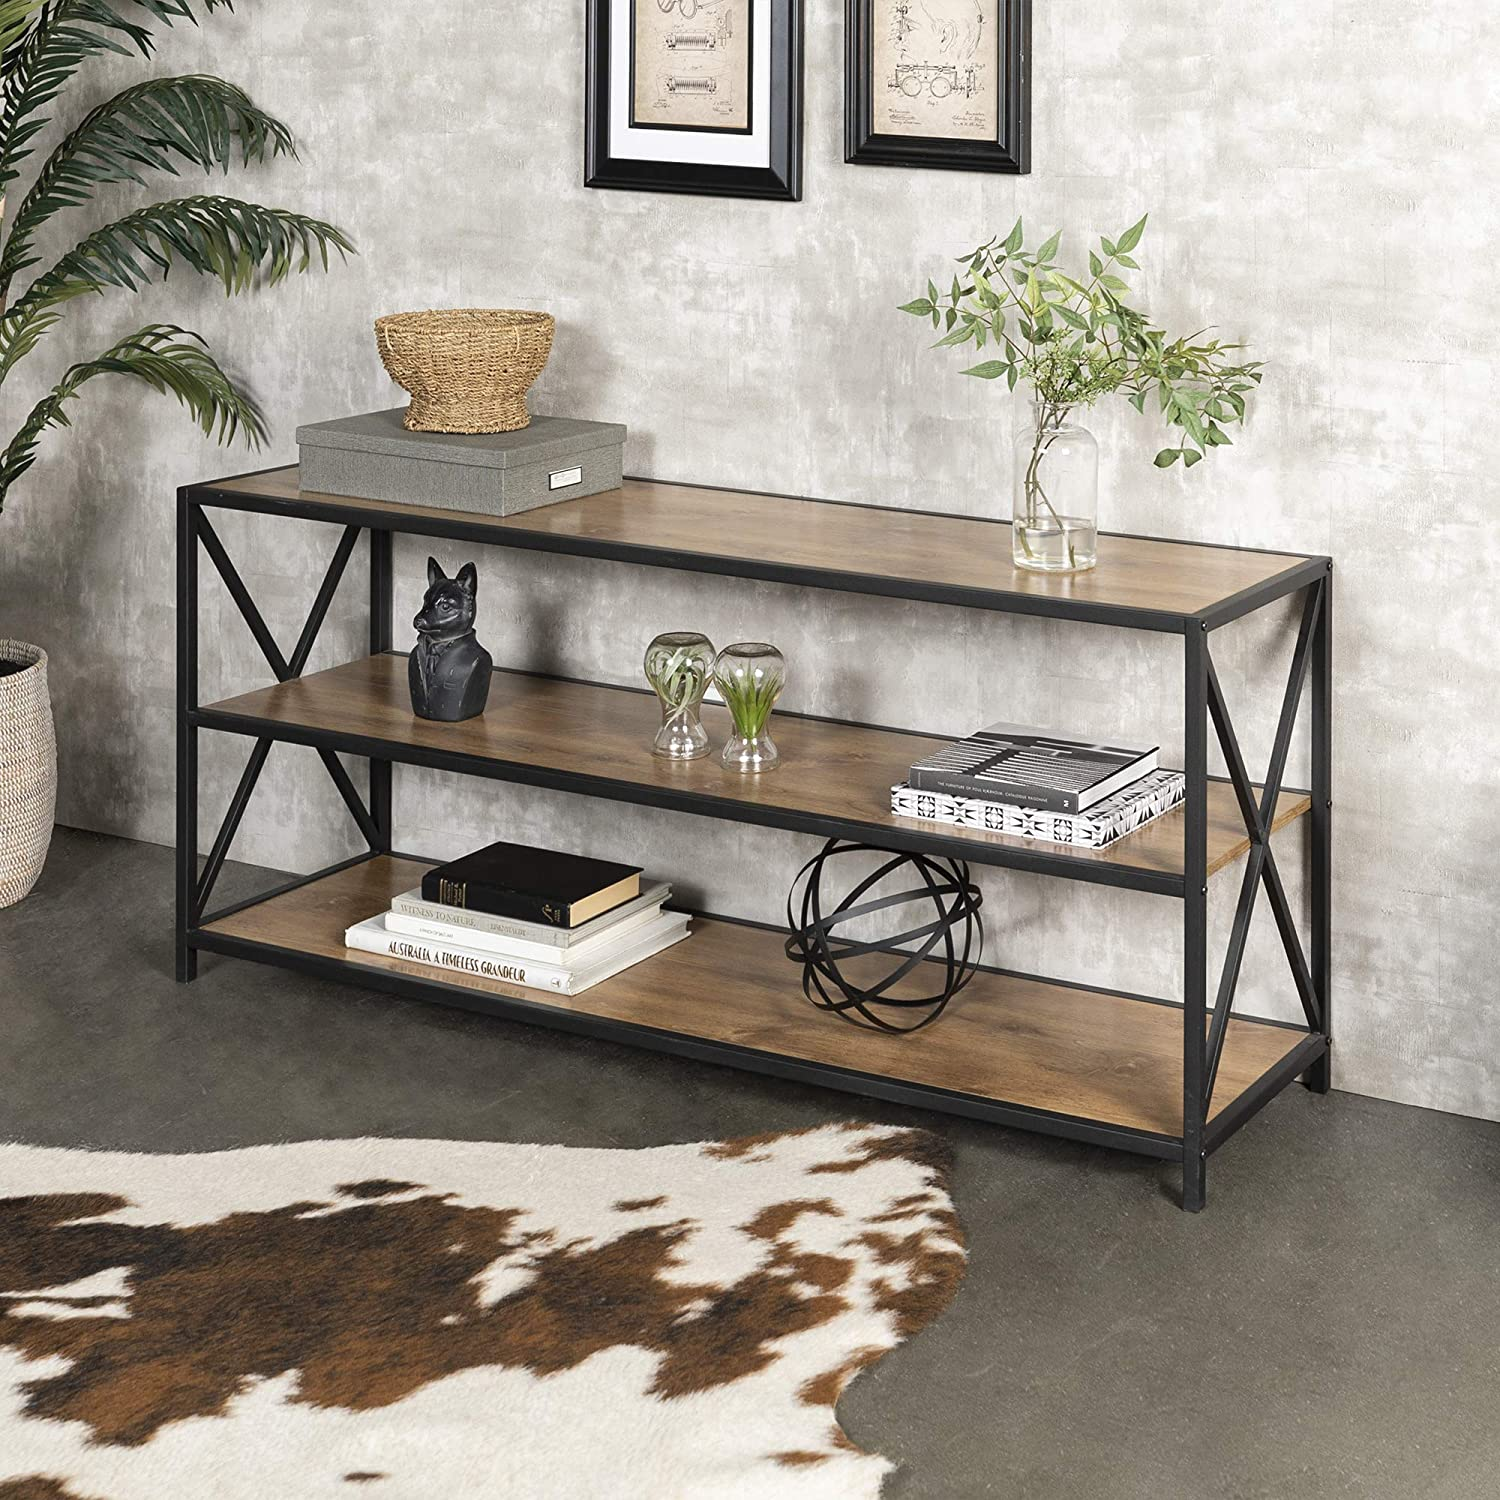 Amazon com we furniture industrial bookshelf powder coated steel barnwood one size kitchen dining